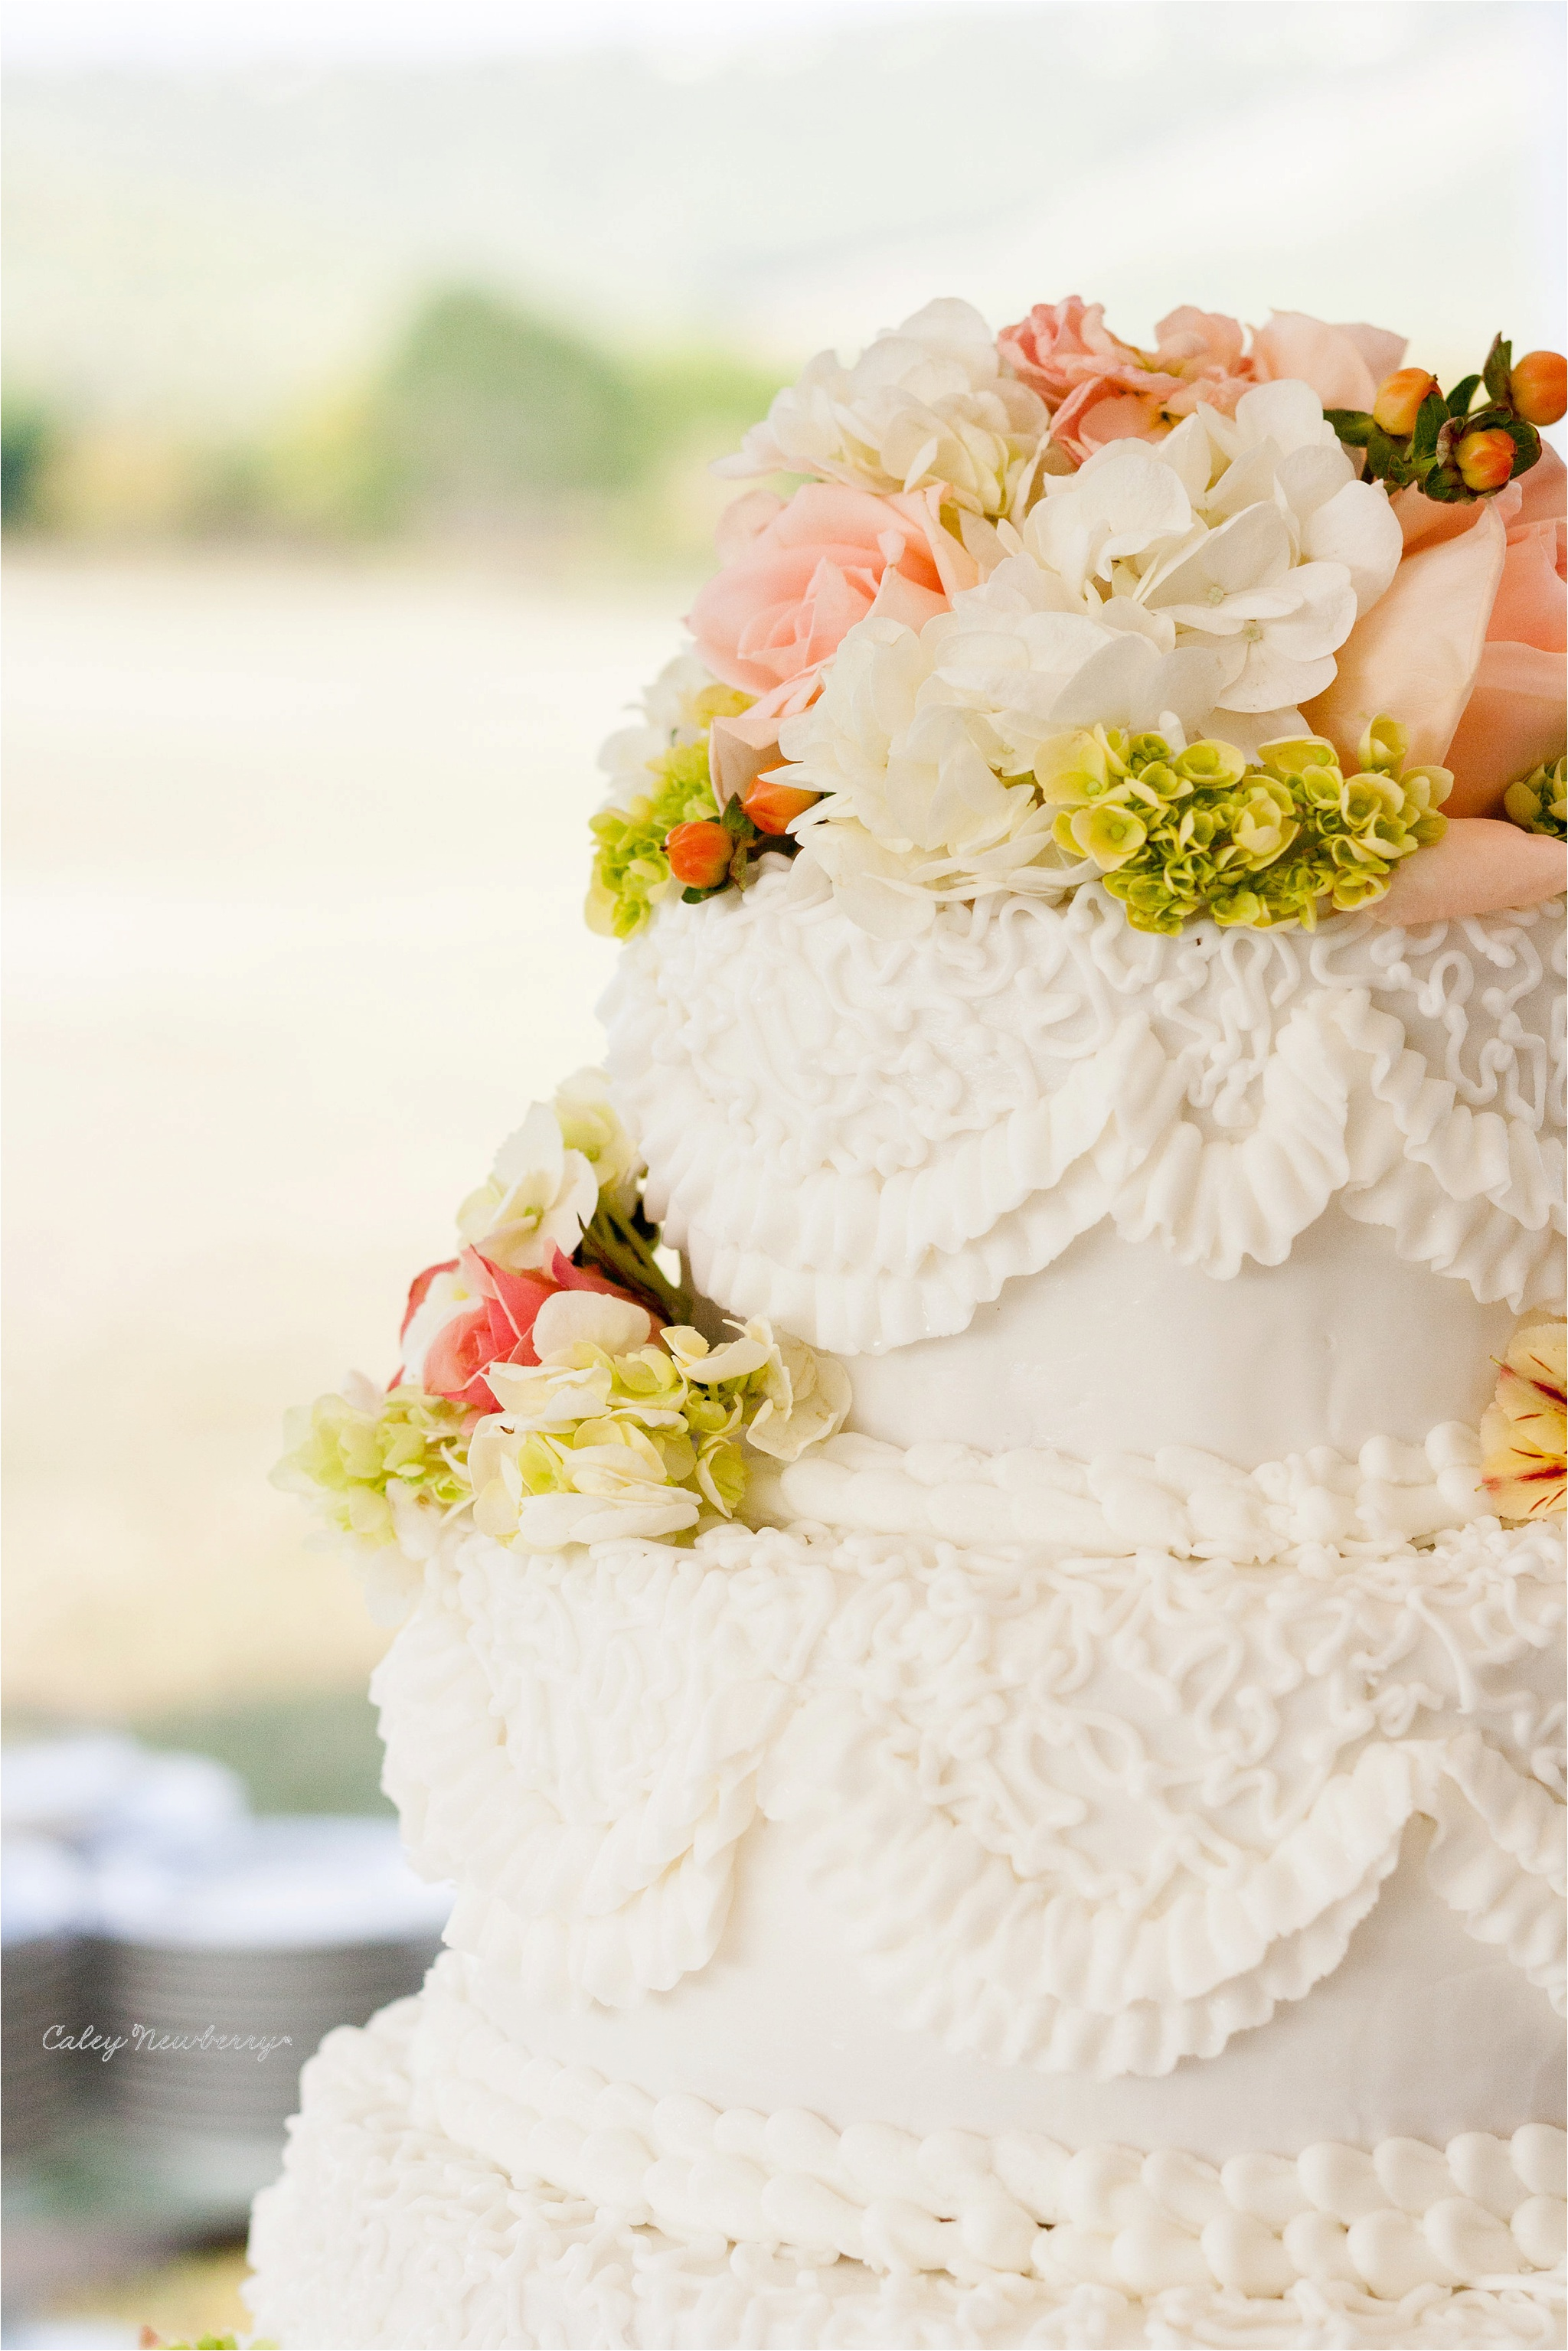 traditional-wedding-cake.jpg